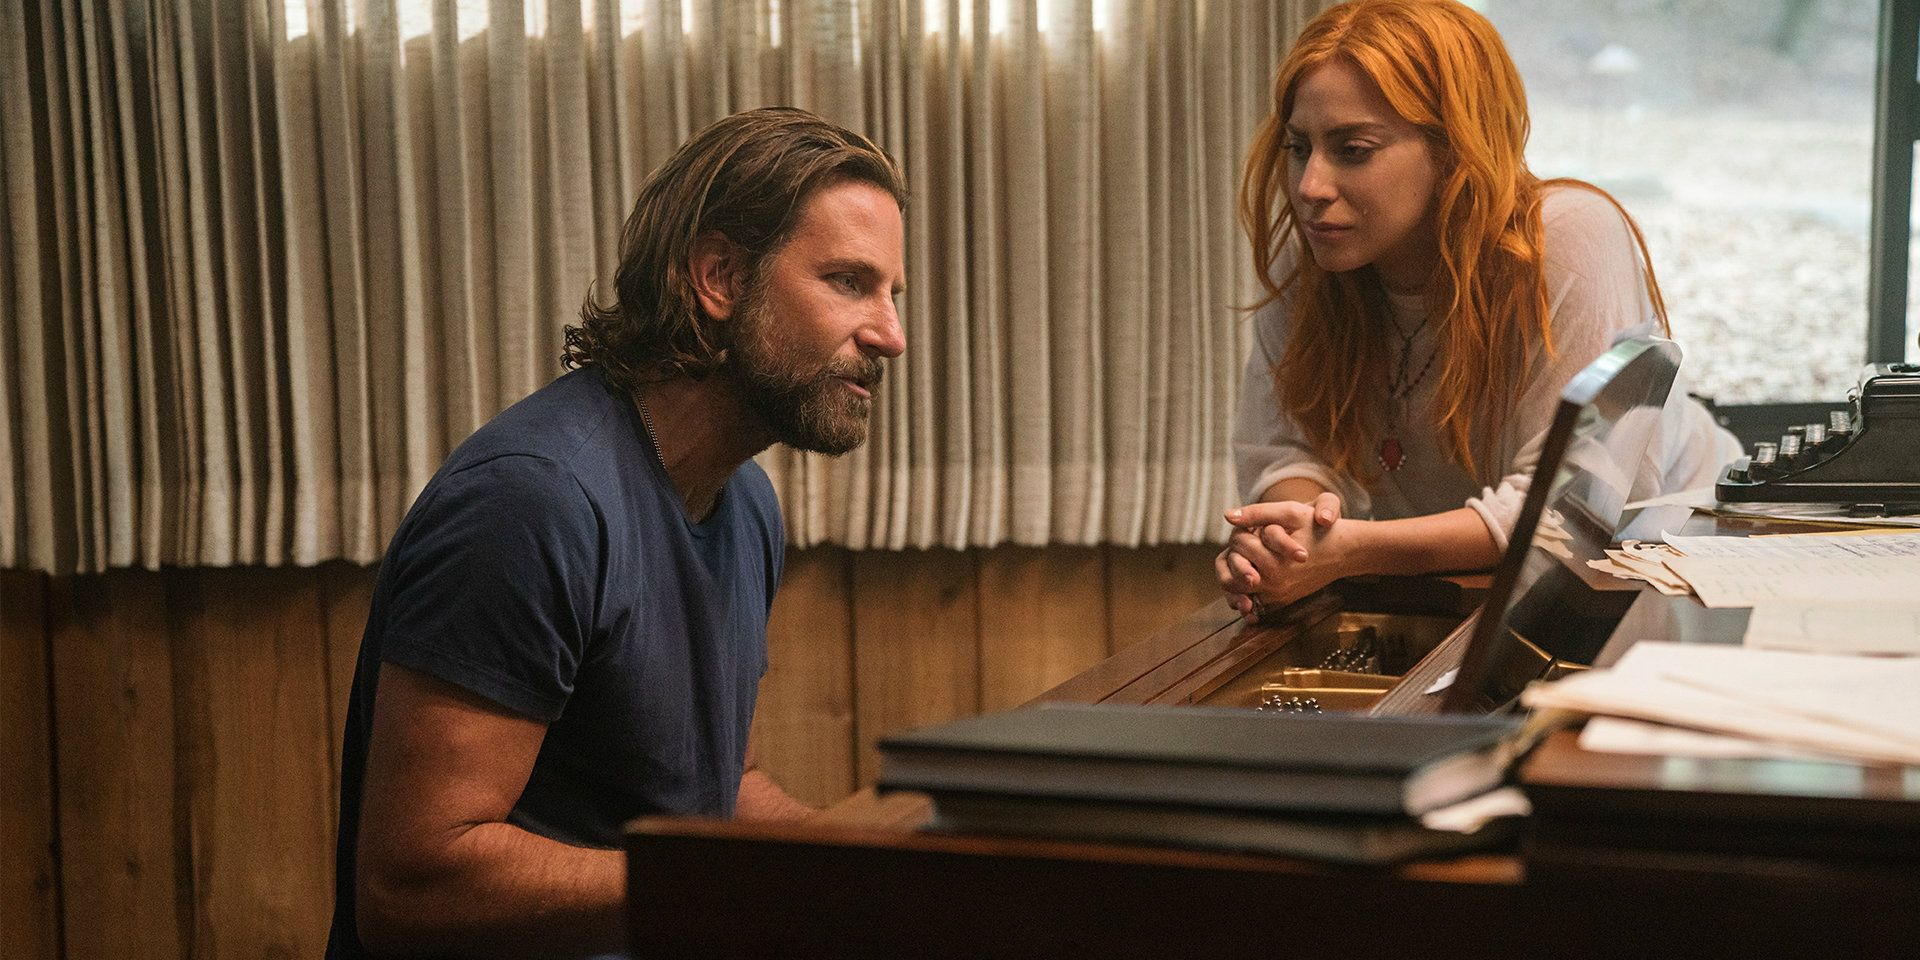 A Star Is Born Re-releasing With 12 Minutes Of Additional Footage